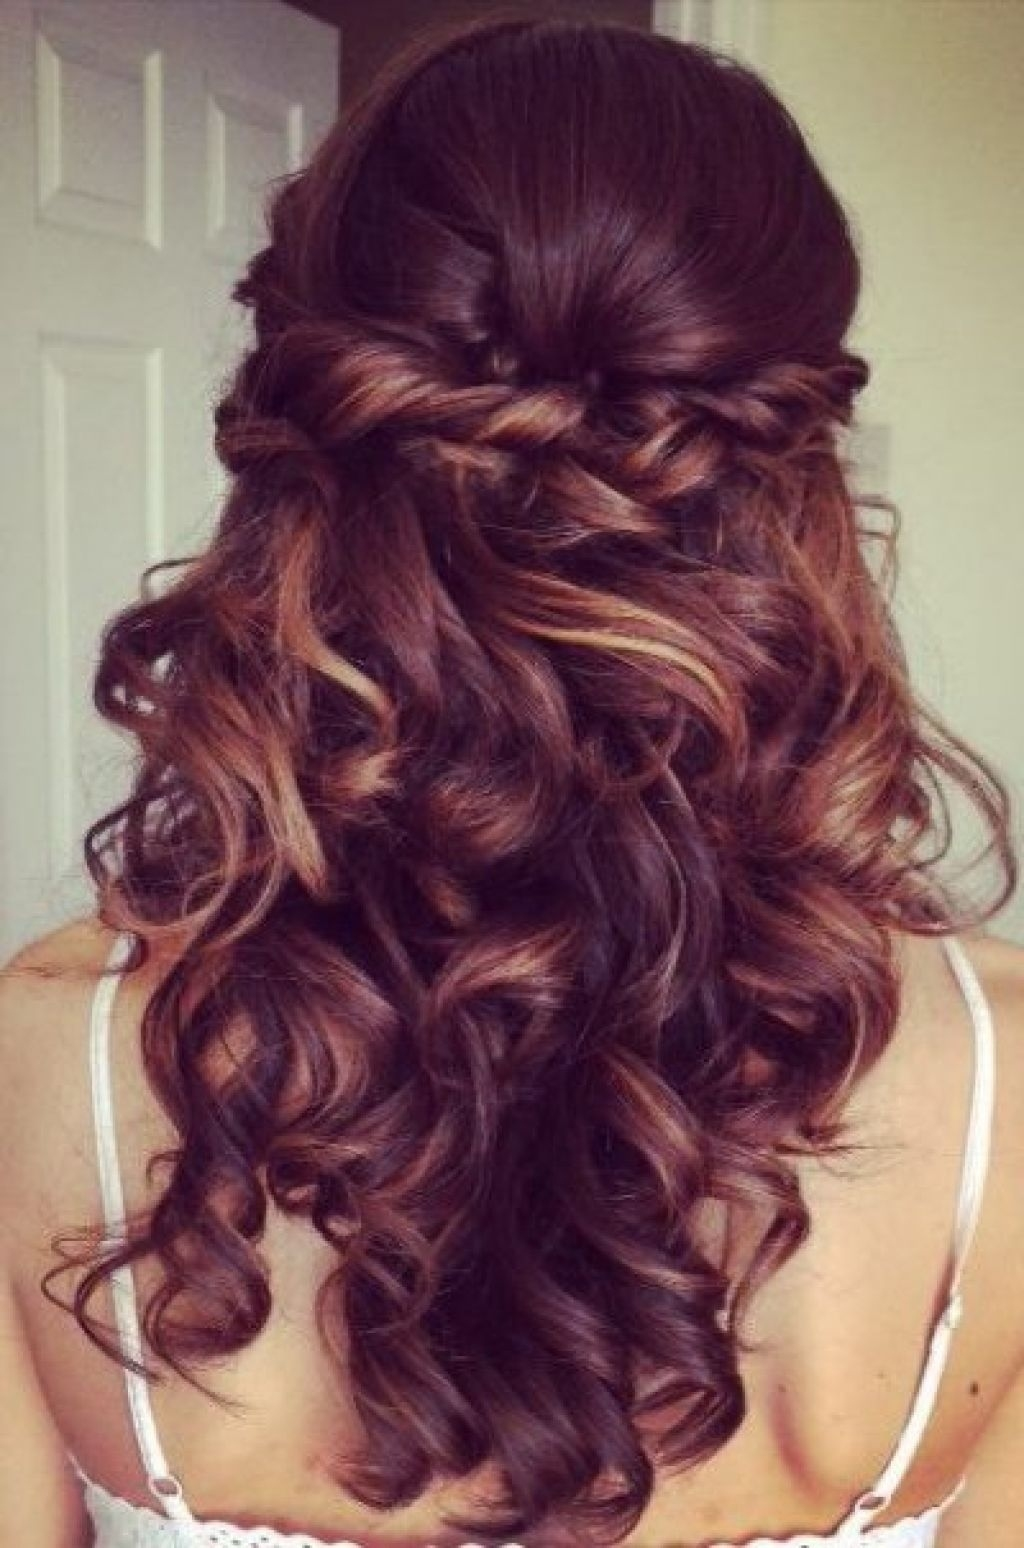 Curly Down Prom Hairstyles - Wavy Haircut